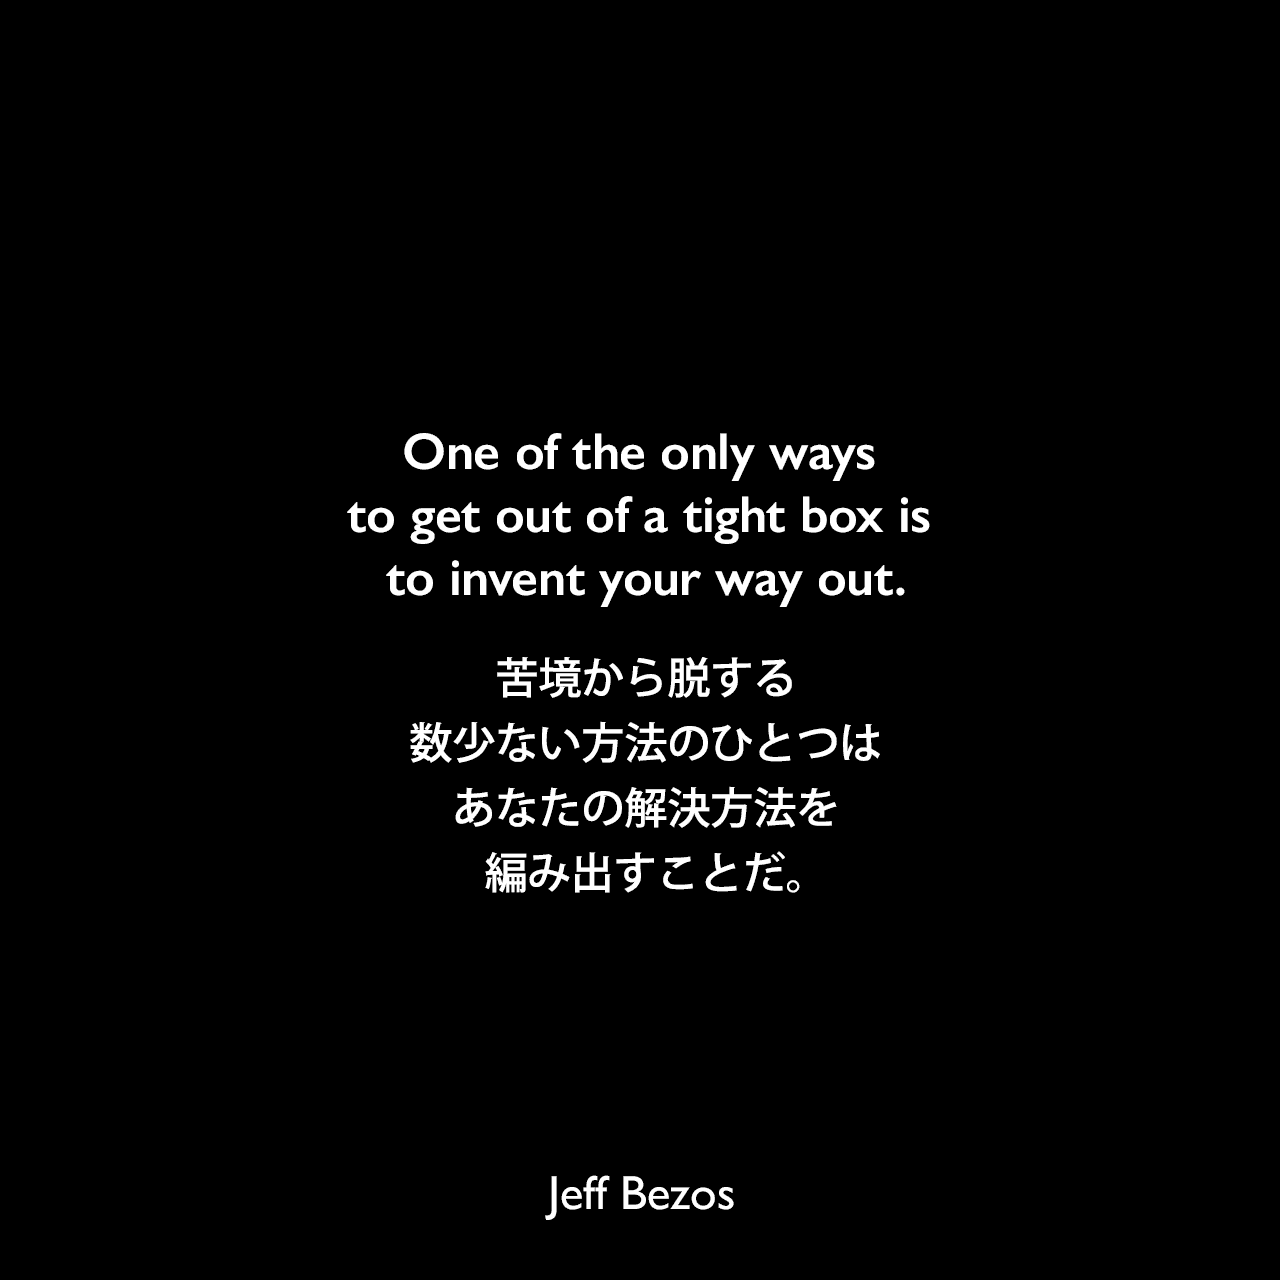 One of the only ways to get out of a tight box is to invent your way out.苦境から脱する数少ない方法のひとつは、あなたの解決方法を編み出すことだ。Jeff Bezos